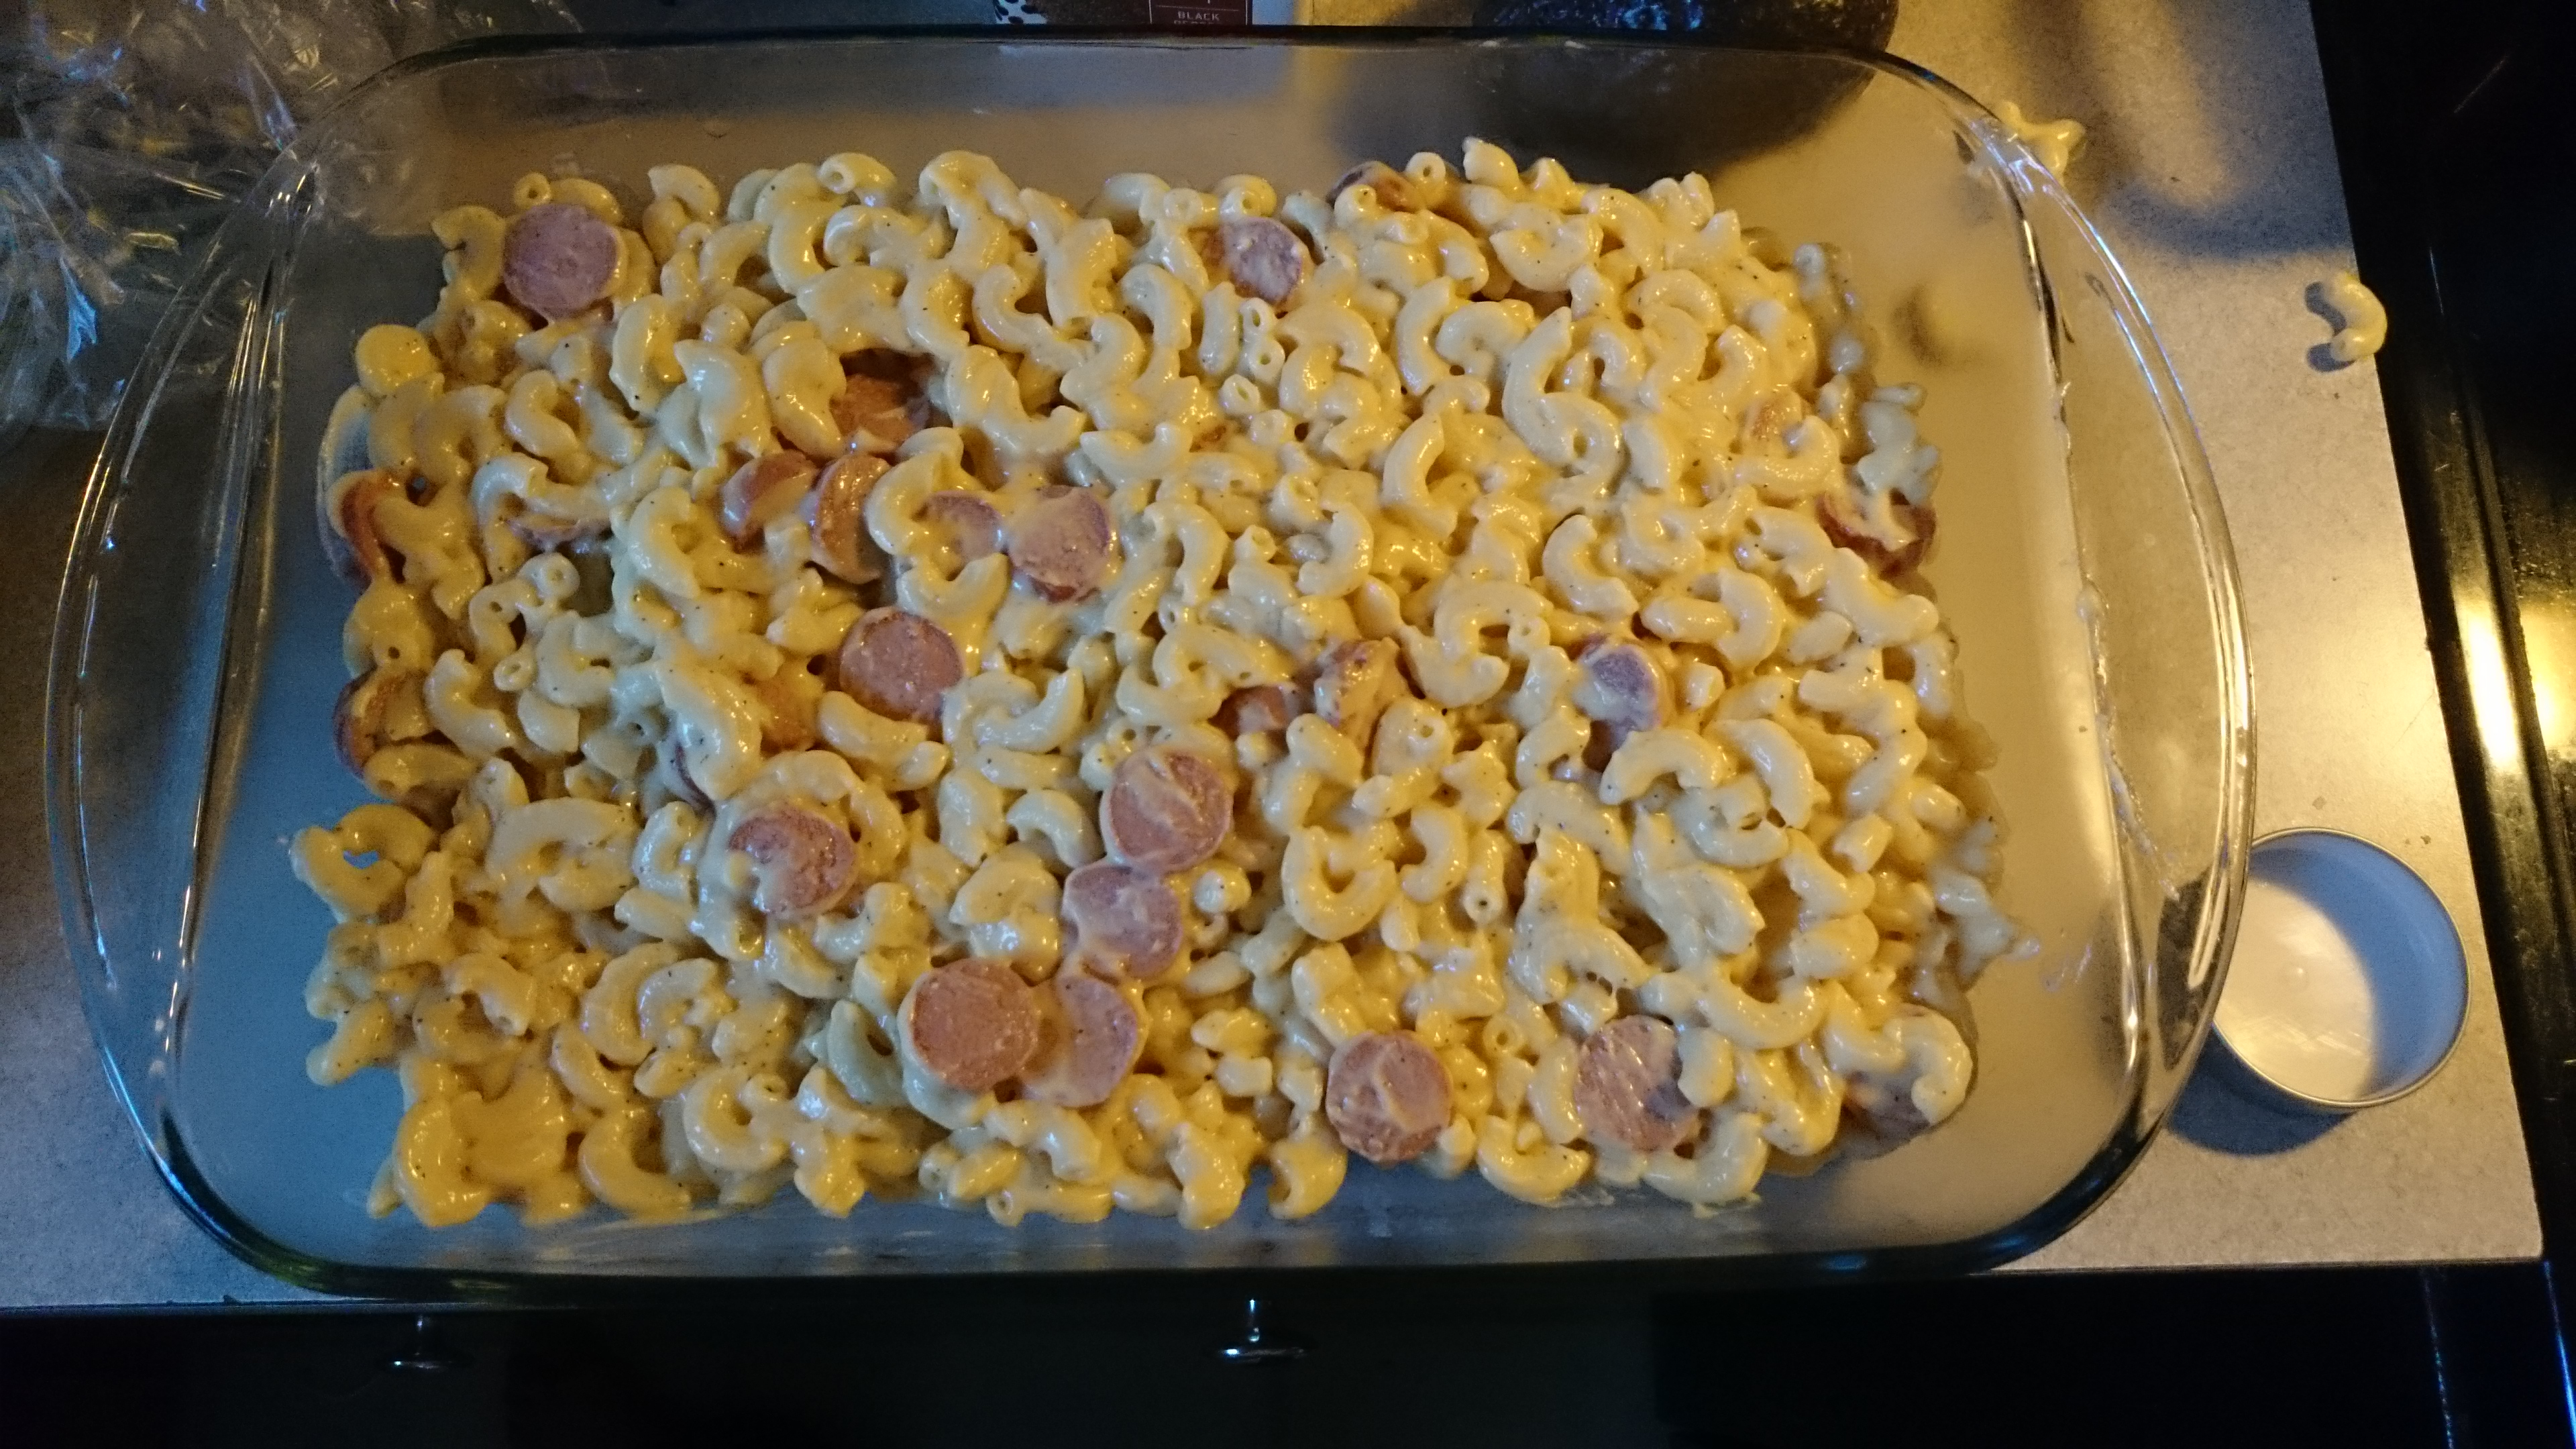 Pour the Mac 'n' cheese with sauce into a separate pan and then sprinkle some cheese on top.